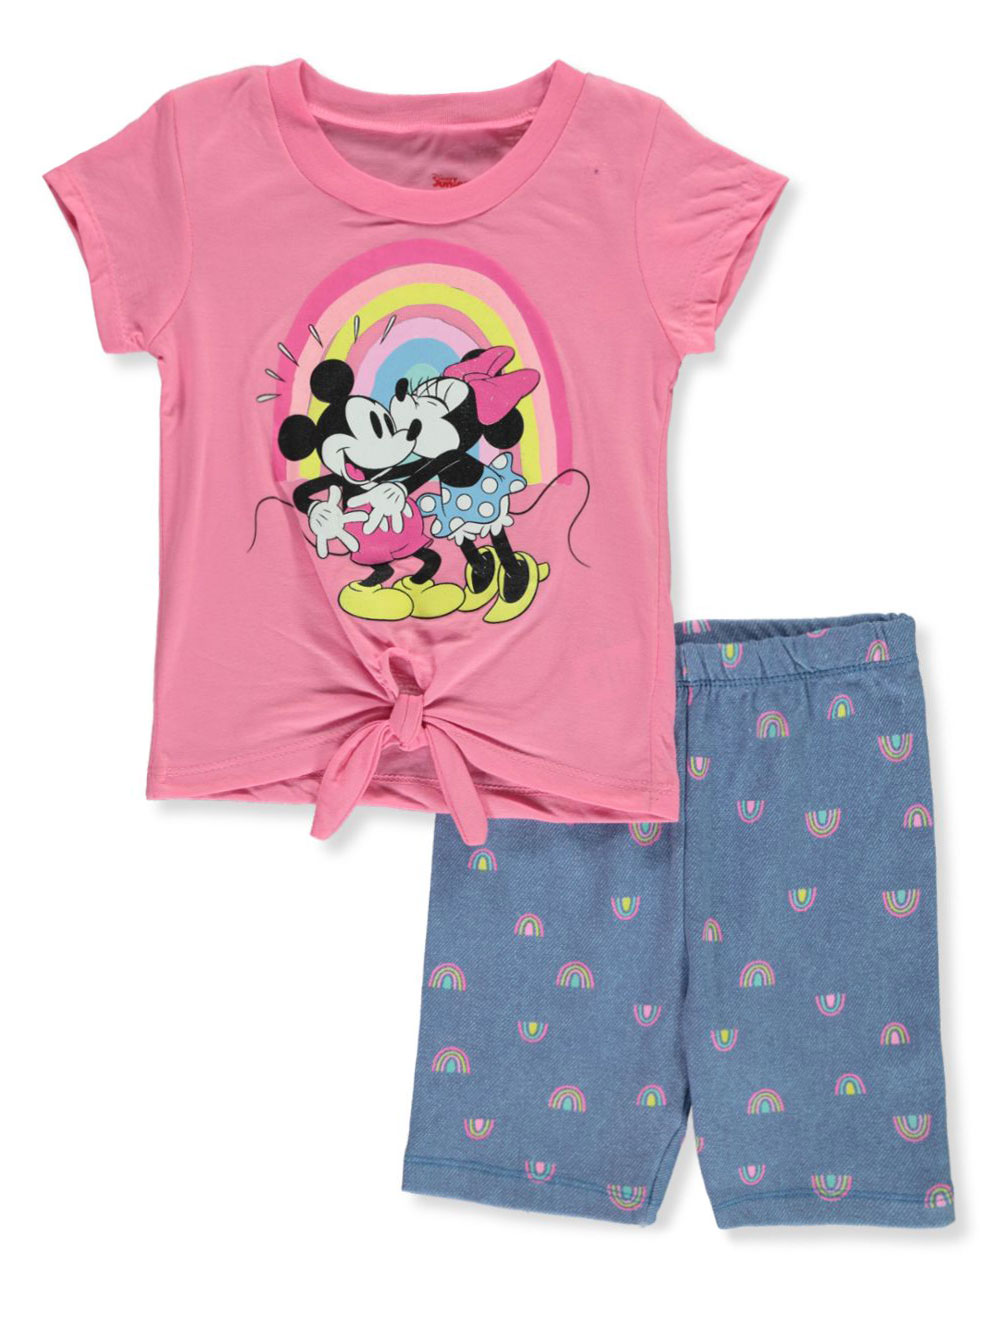 Disney Minnie Mouse Baby Girl T Shirt /& Comic Print Overalls Outfit Pink Blue